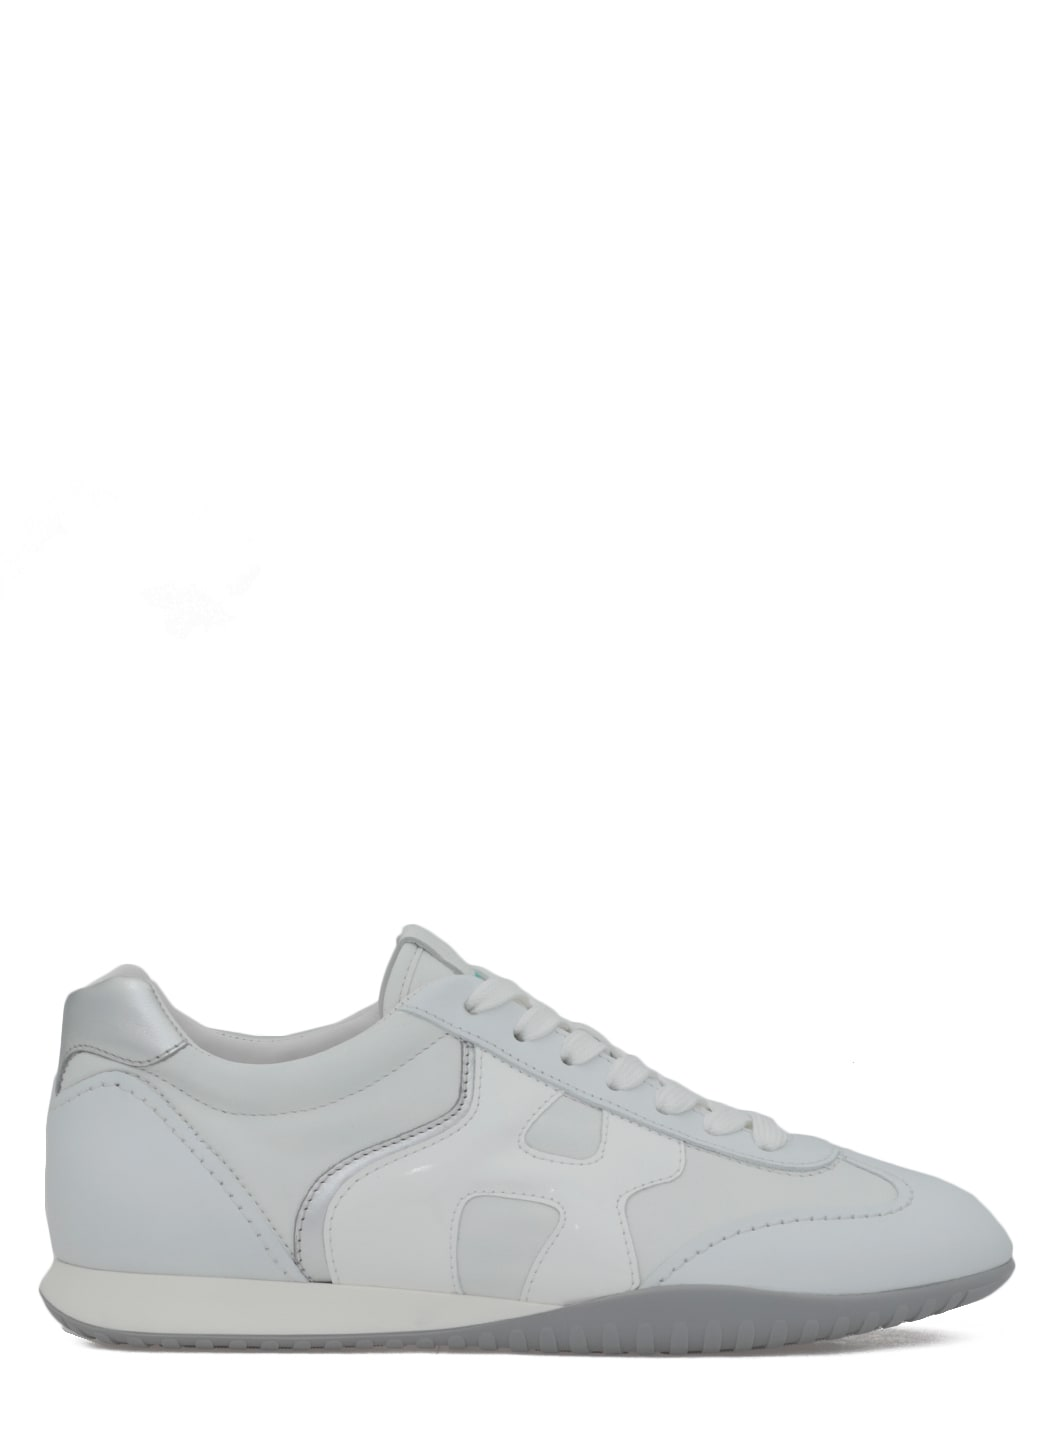 Shop Hogan Smooth Leather Sneaker In Bianco argento